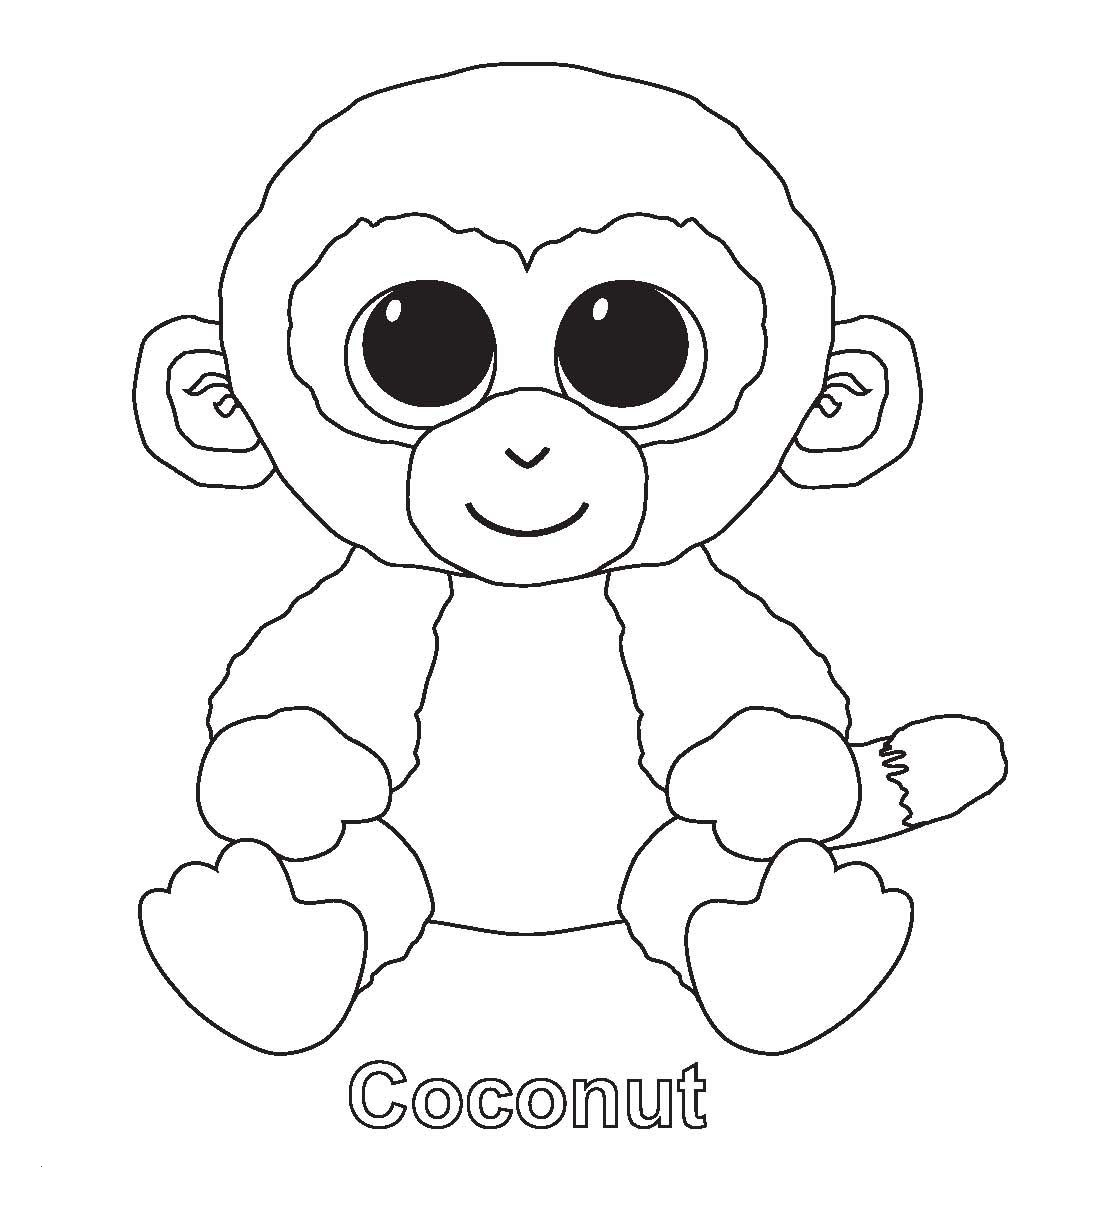 21 Giant Panda Coloring Pages Collection Coloring Sheets